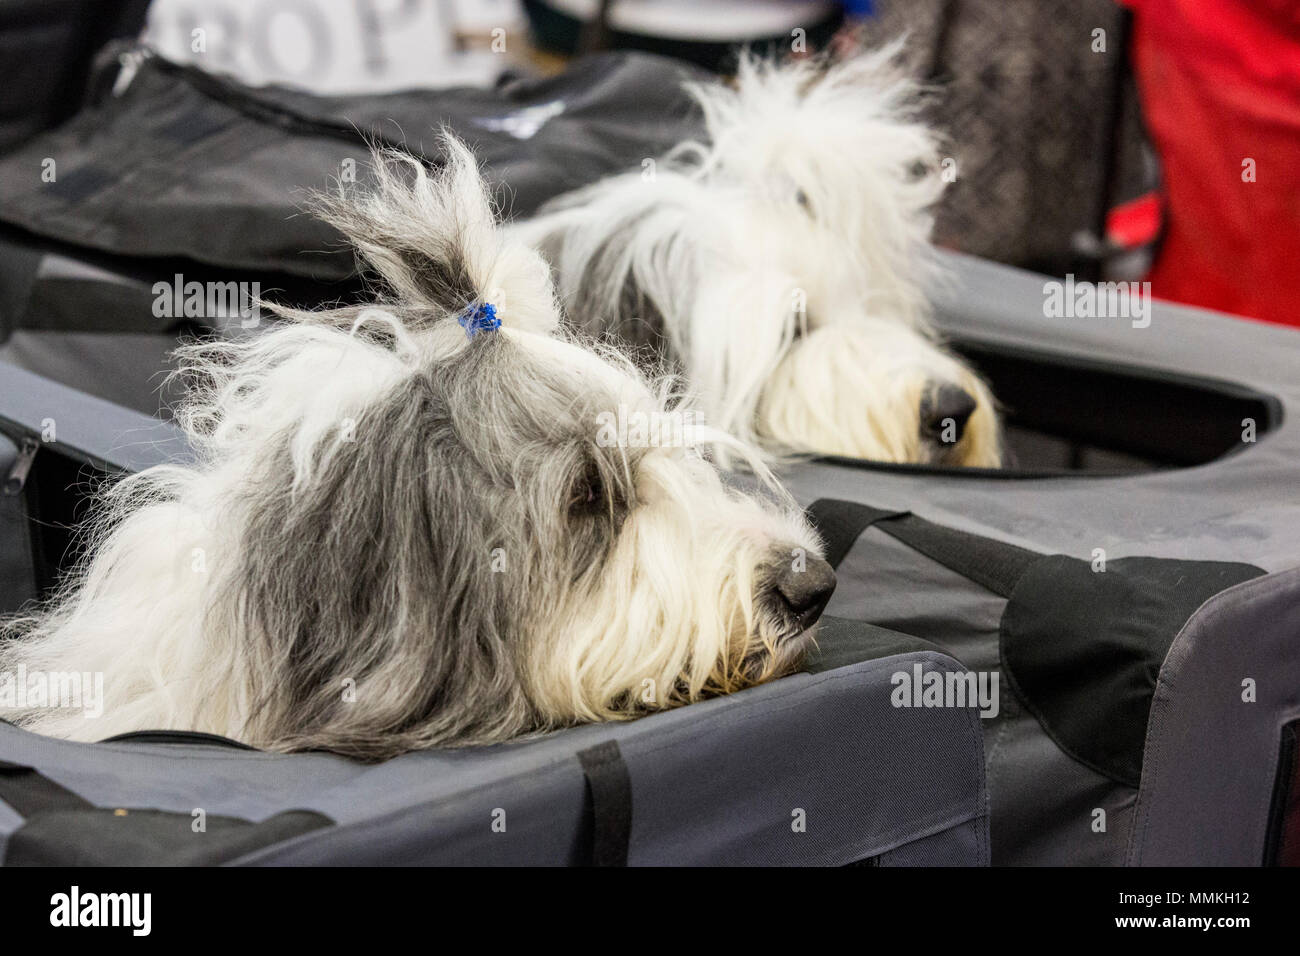 Dortmund, Germany. 12 May 2018. Two Bobtails relaxing. One of the largest dog and cat shows Hund & Katz takes place with more than 8000 dogs from 250 different breeds from 11 to 13 May at Westfalenhallen trade fair in Dortmund. Credit: 51North/Alamy Live News - Stock Image